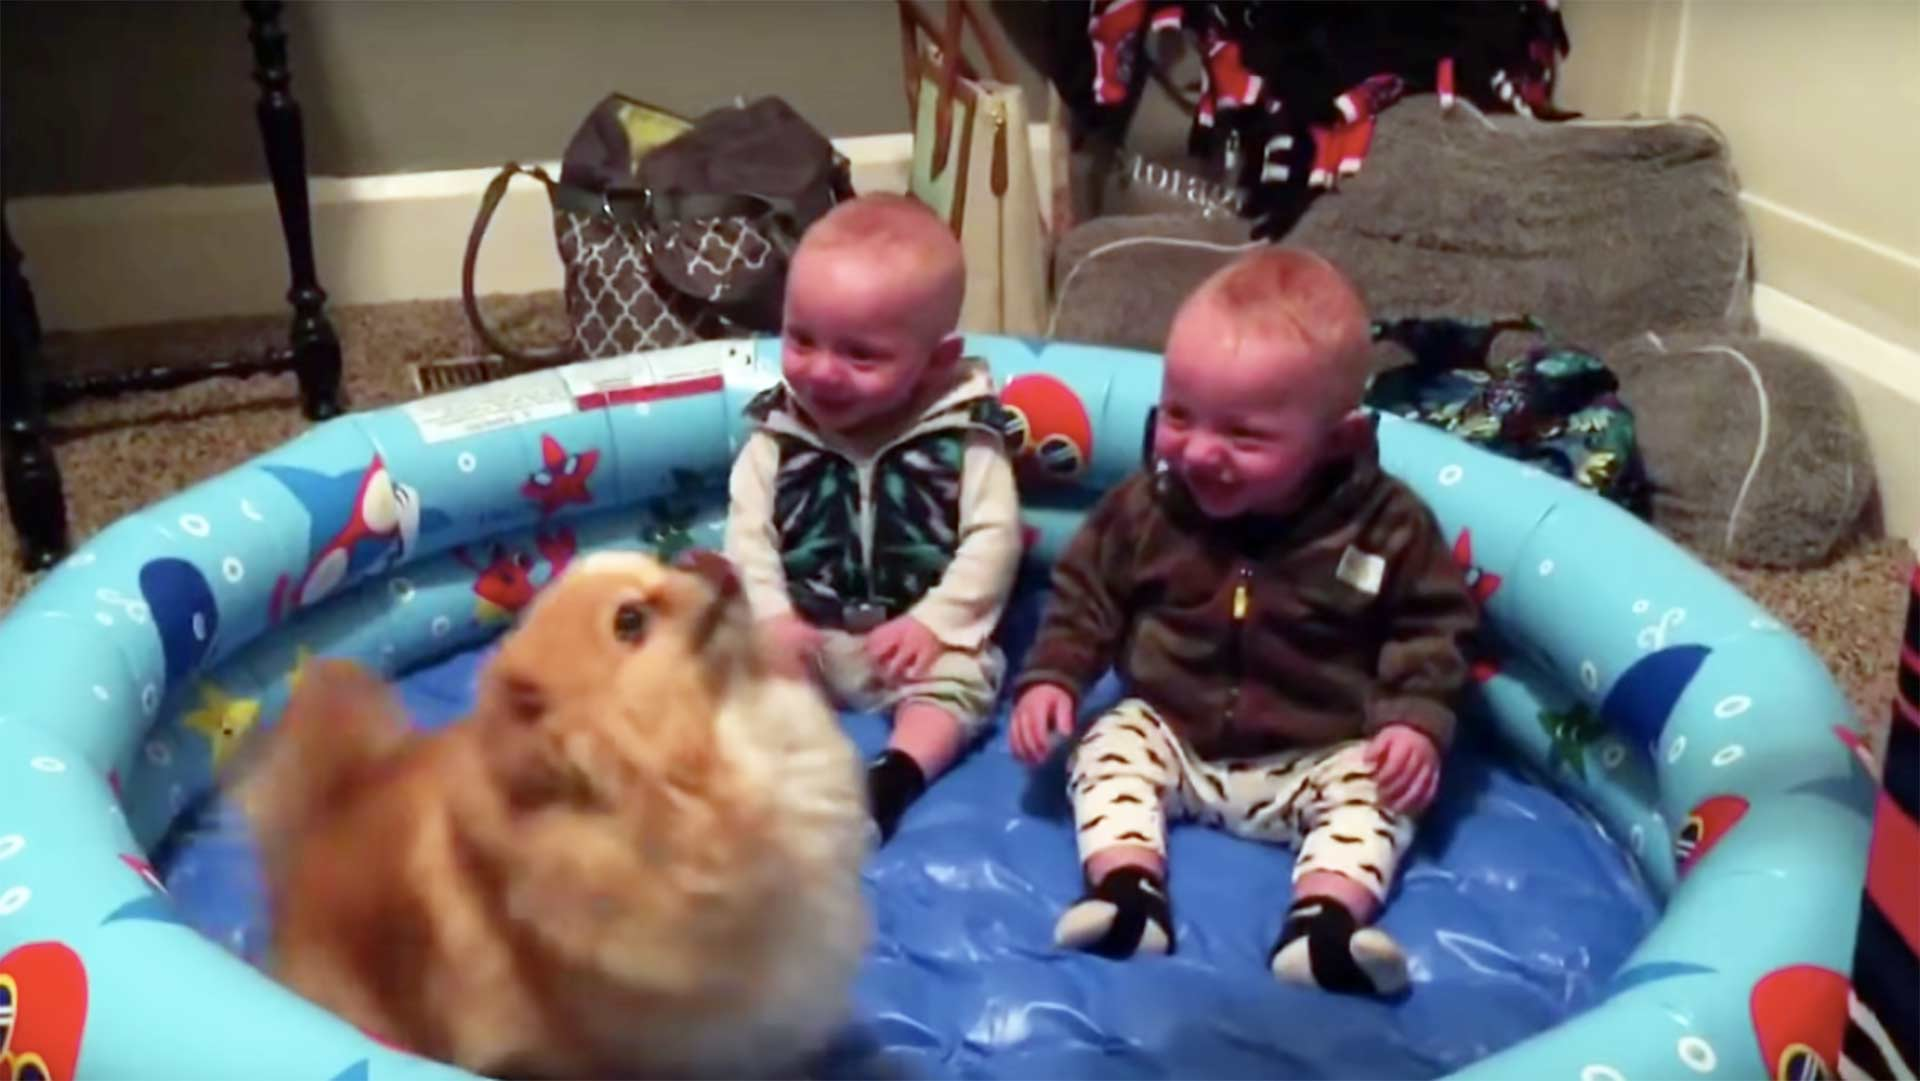 RT @mashable: Warning: toddler twins laughing at their dog is highly contagious http://t.co/Ajgl4EHjYl http://t.co/zUaTfeVfPd